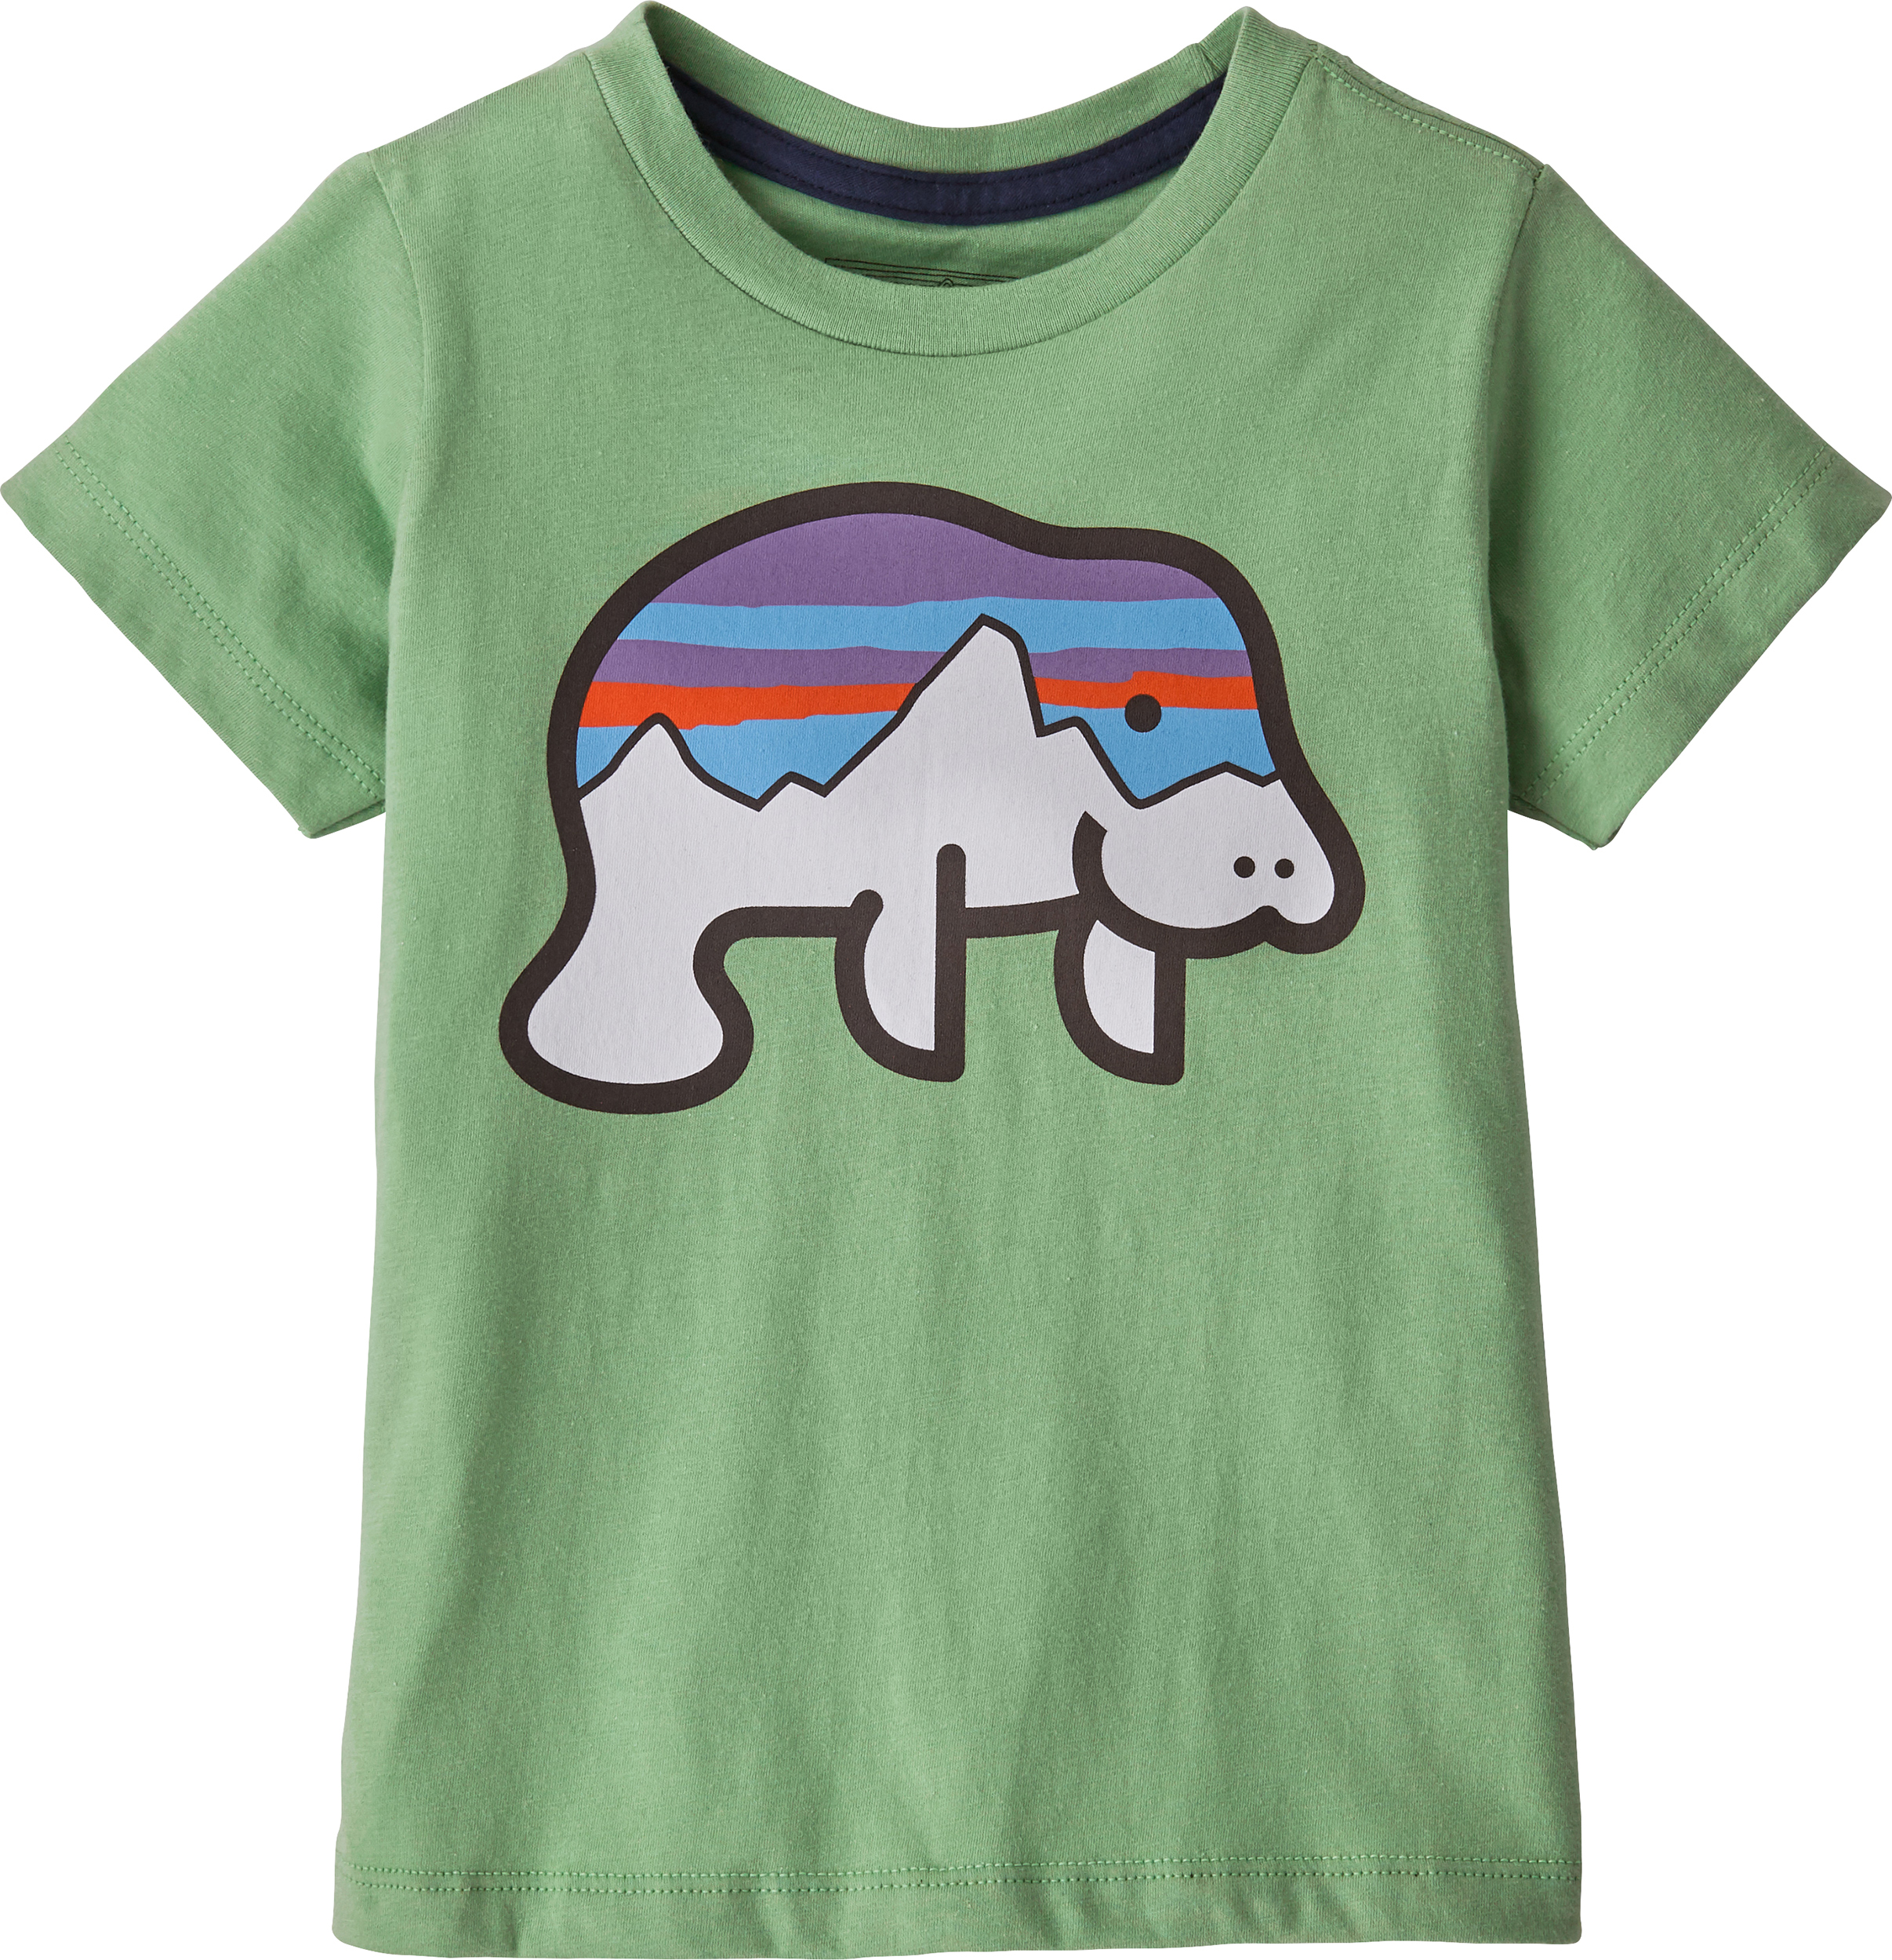 Mountains are Calling Childrens Long Sleeve T-Shirt Boys Cotton Tee Tops